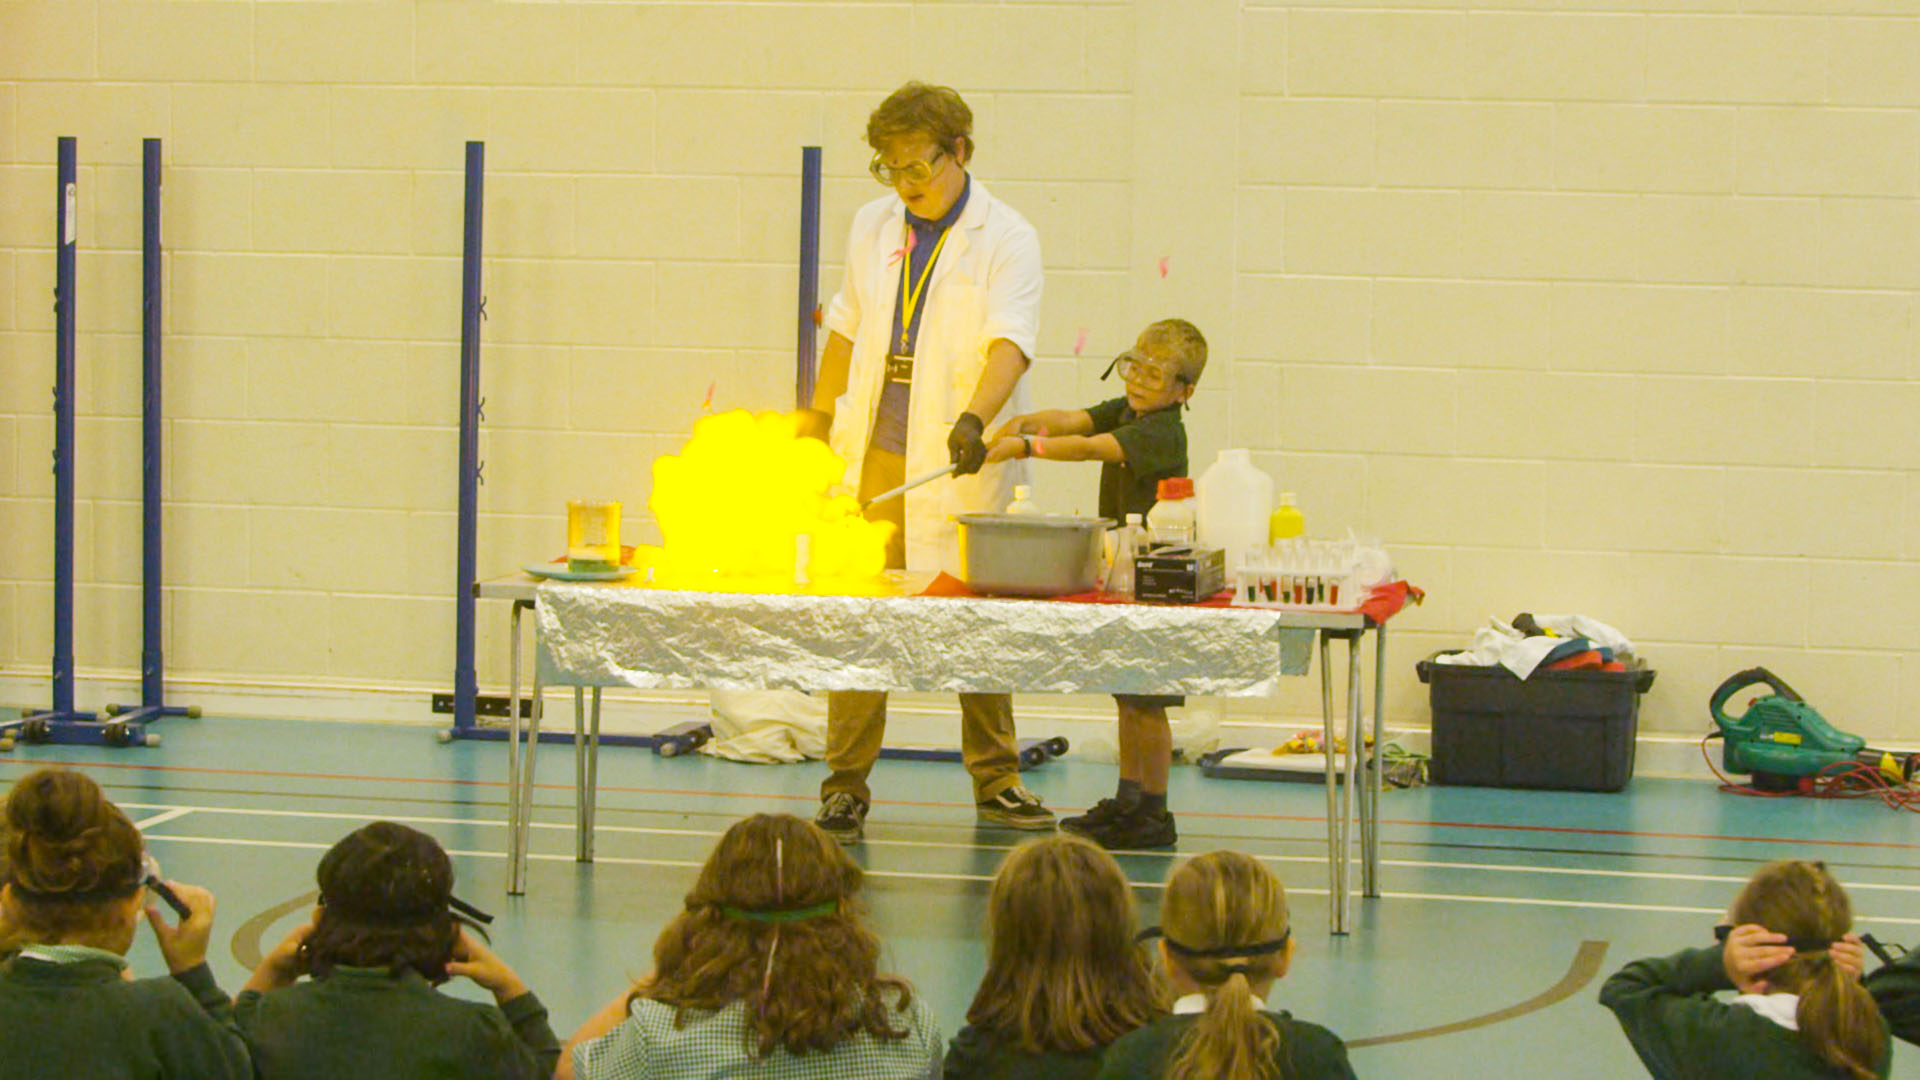 Teacher and student performing a science experiment which creates fire